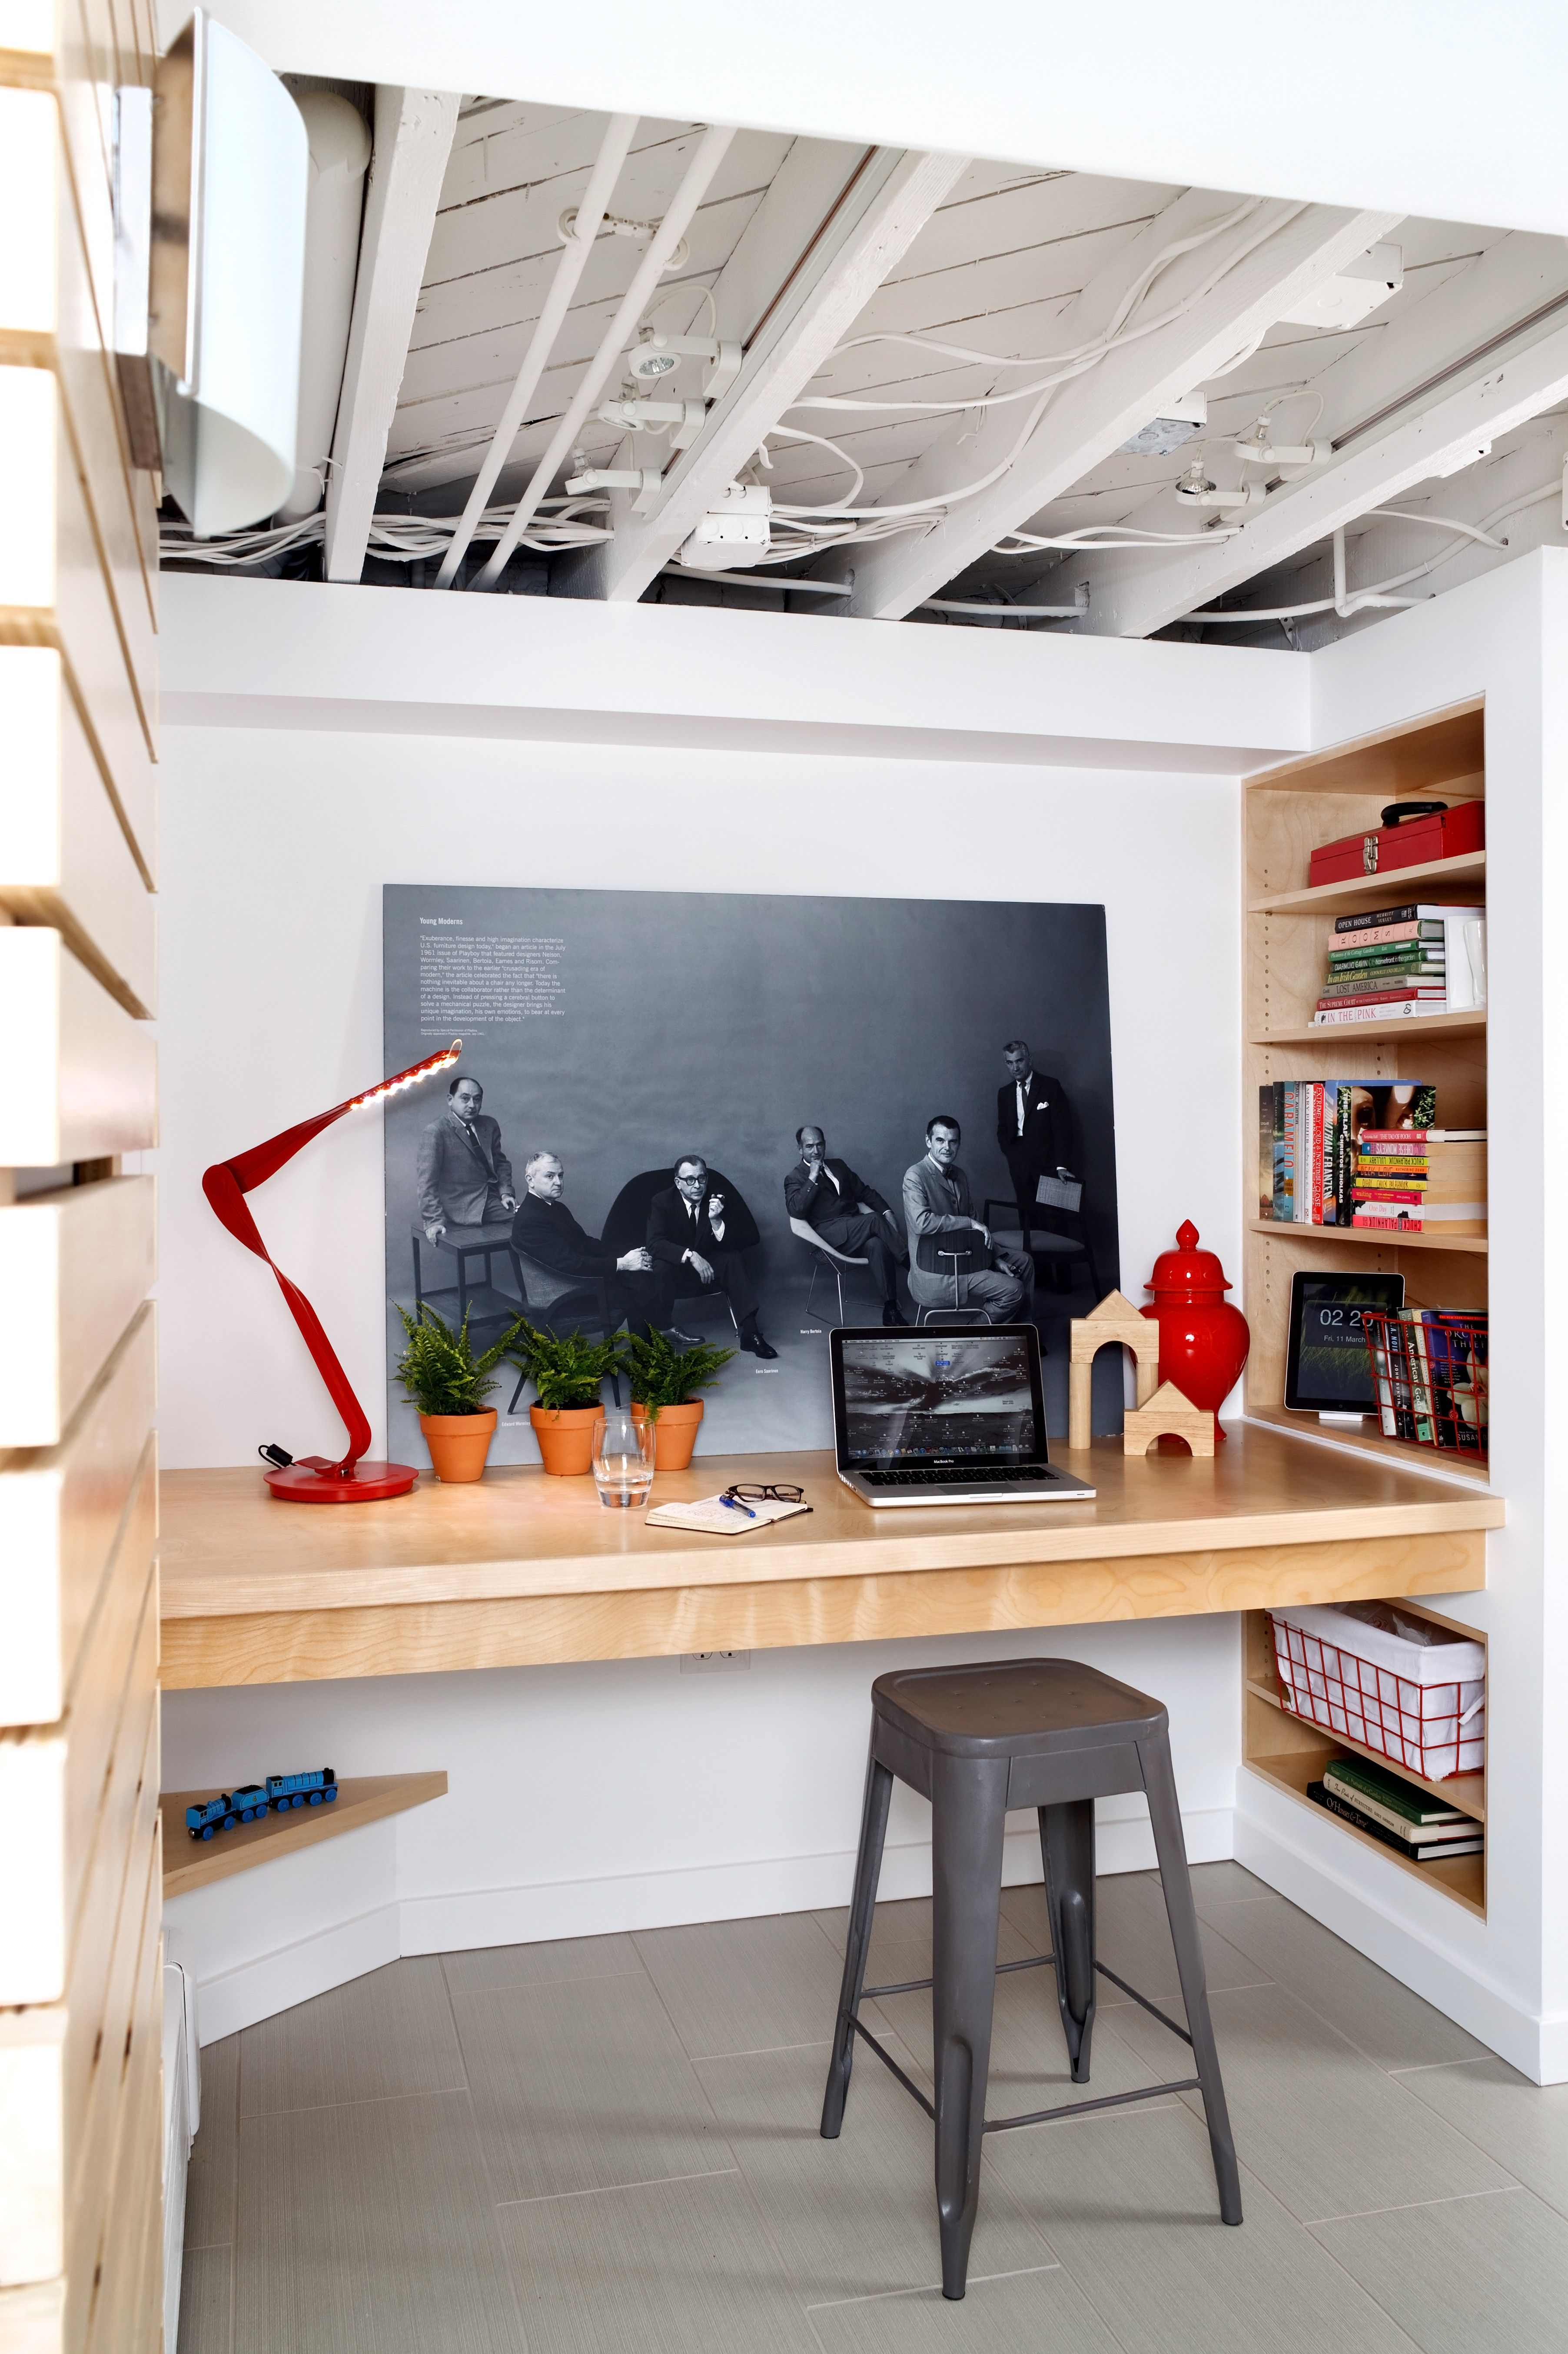 7 Inspiring Home Offices That Make the Most of a Small